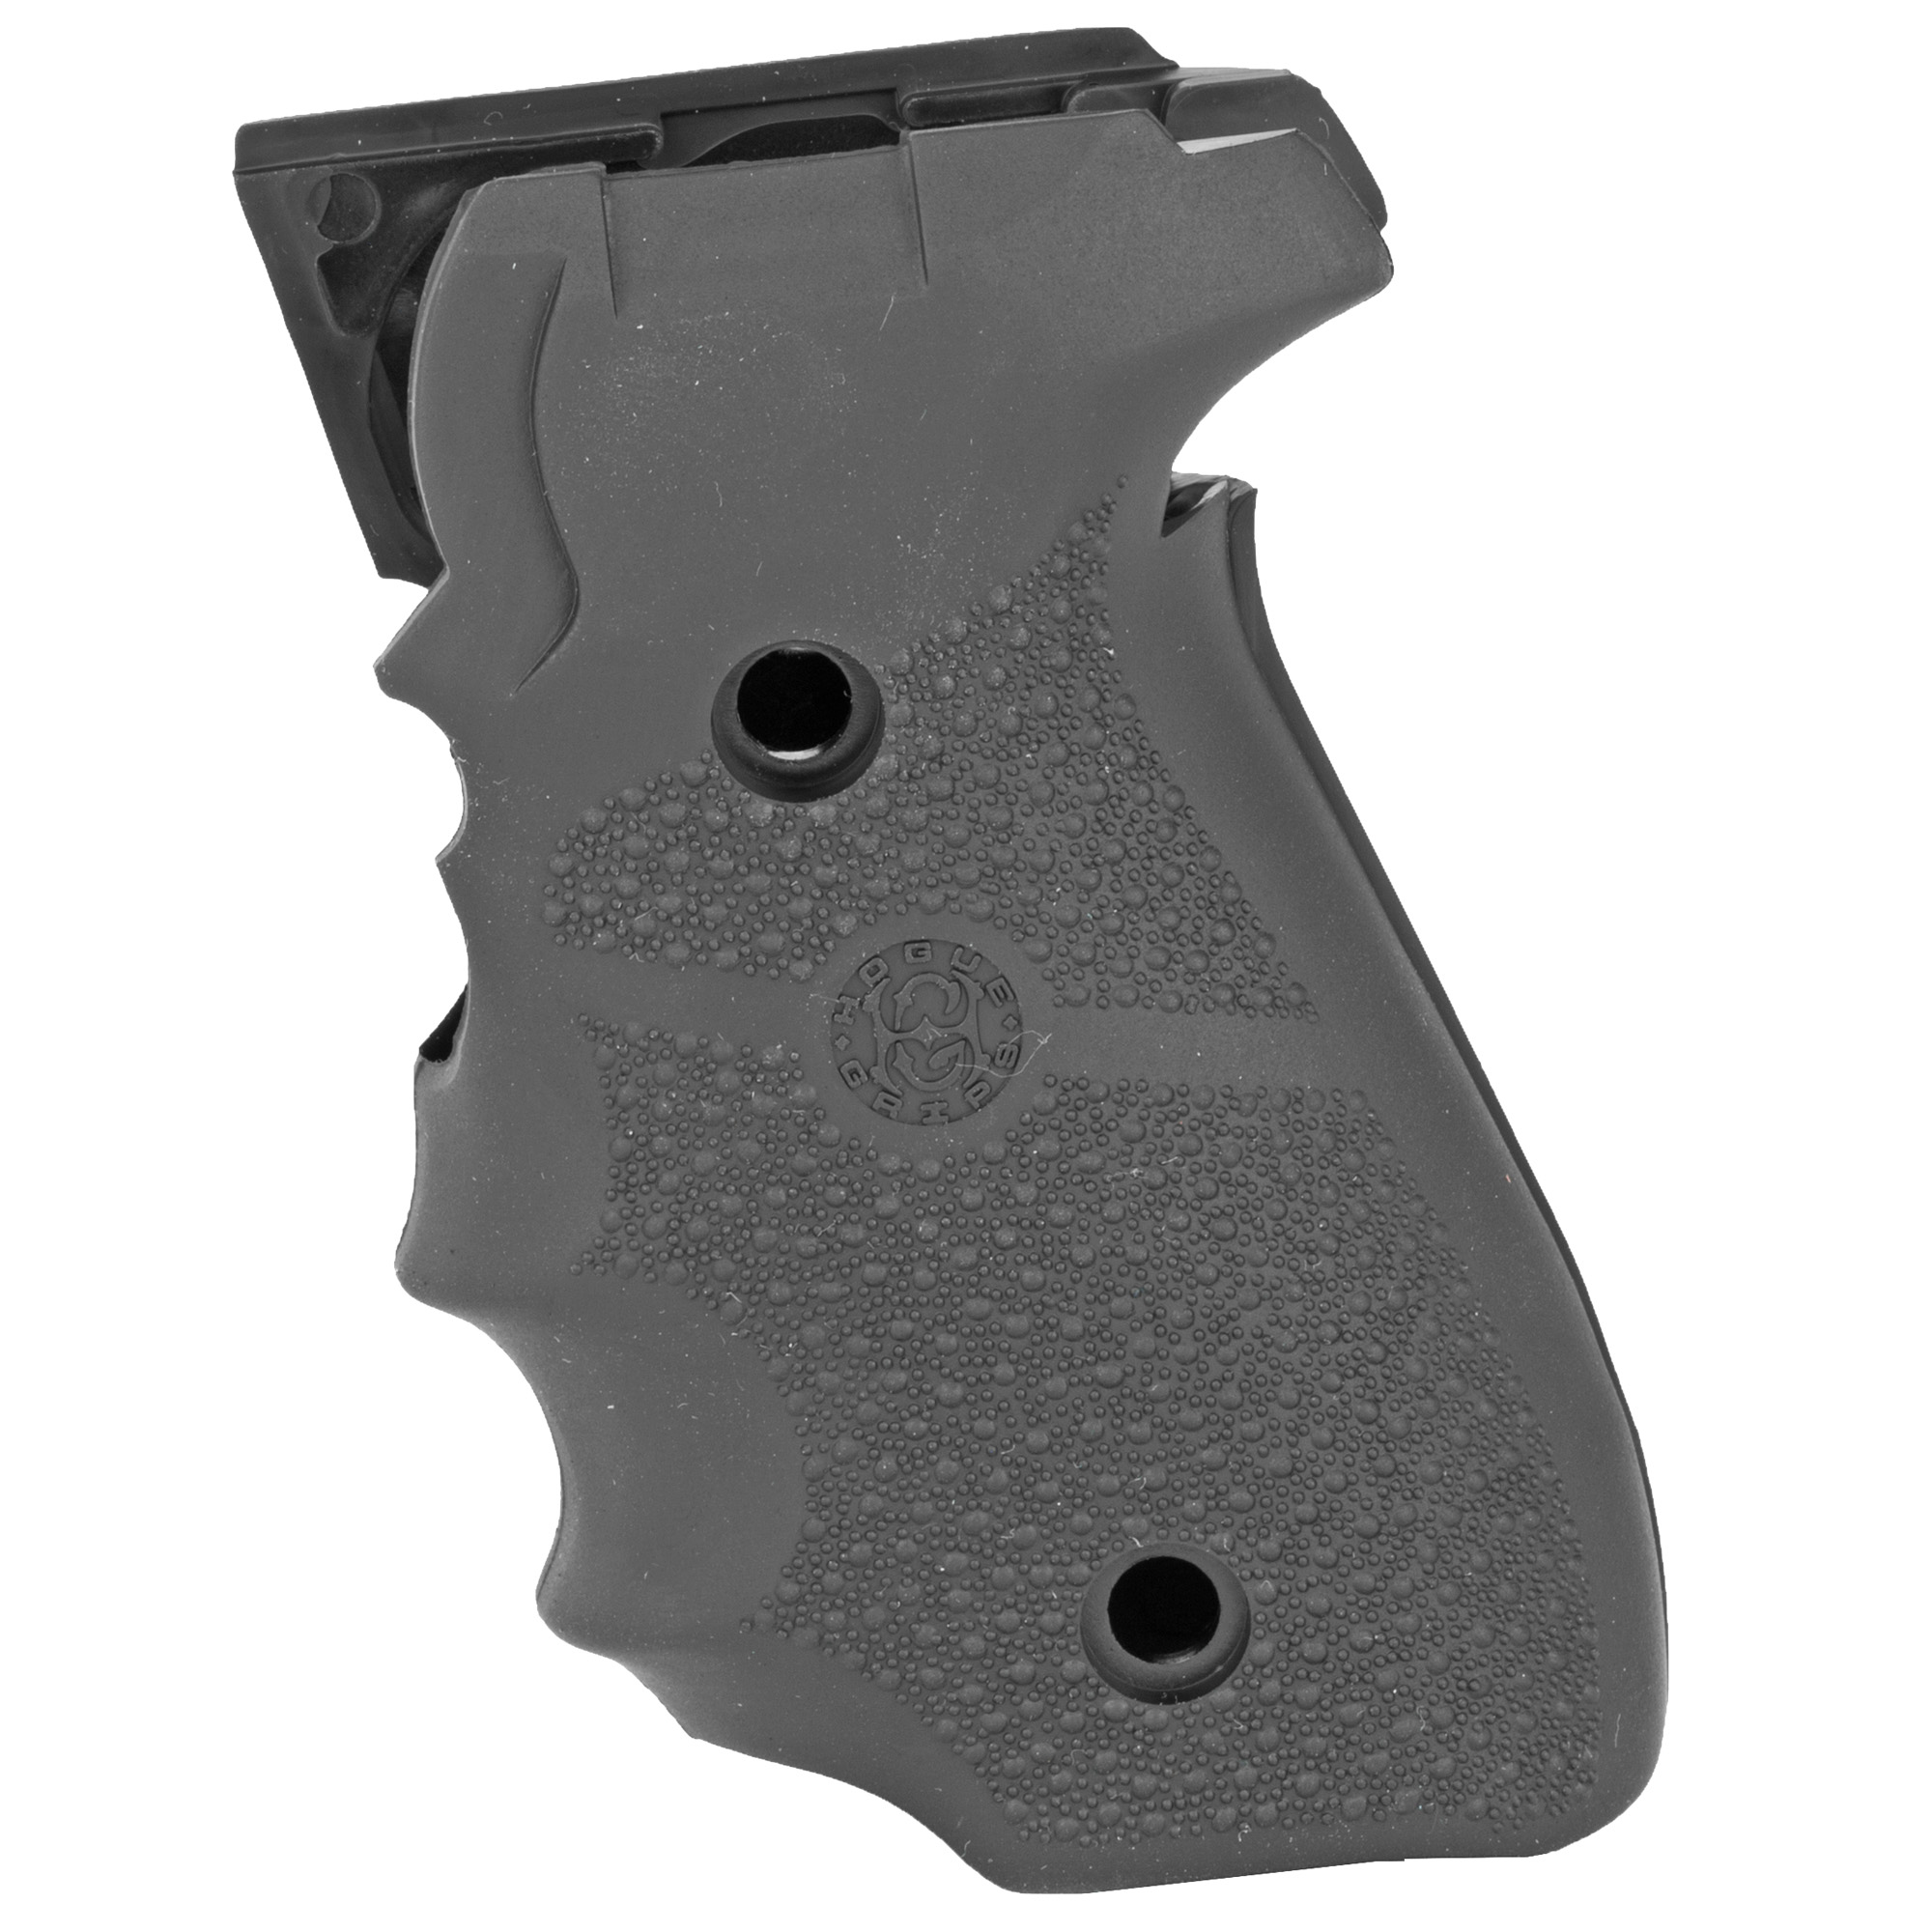 "Cobblestone texture on these soft rubber grips allows for maximum handgun control and tension flexibility. The attractive and nonirritating stippling give a modern appearance while providing the control all firearm enthusiasts desire. They are easy to install and enhance performance. Fits Sig P228"" 229."